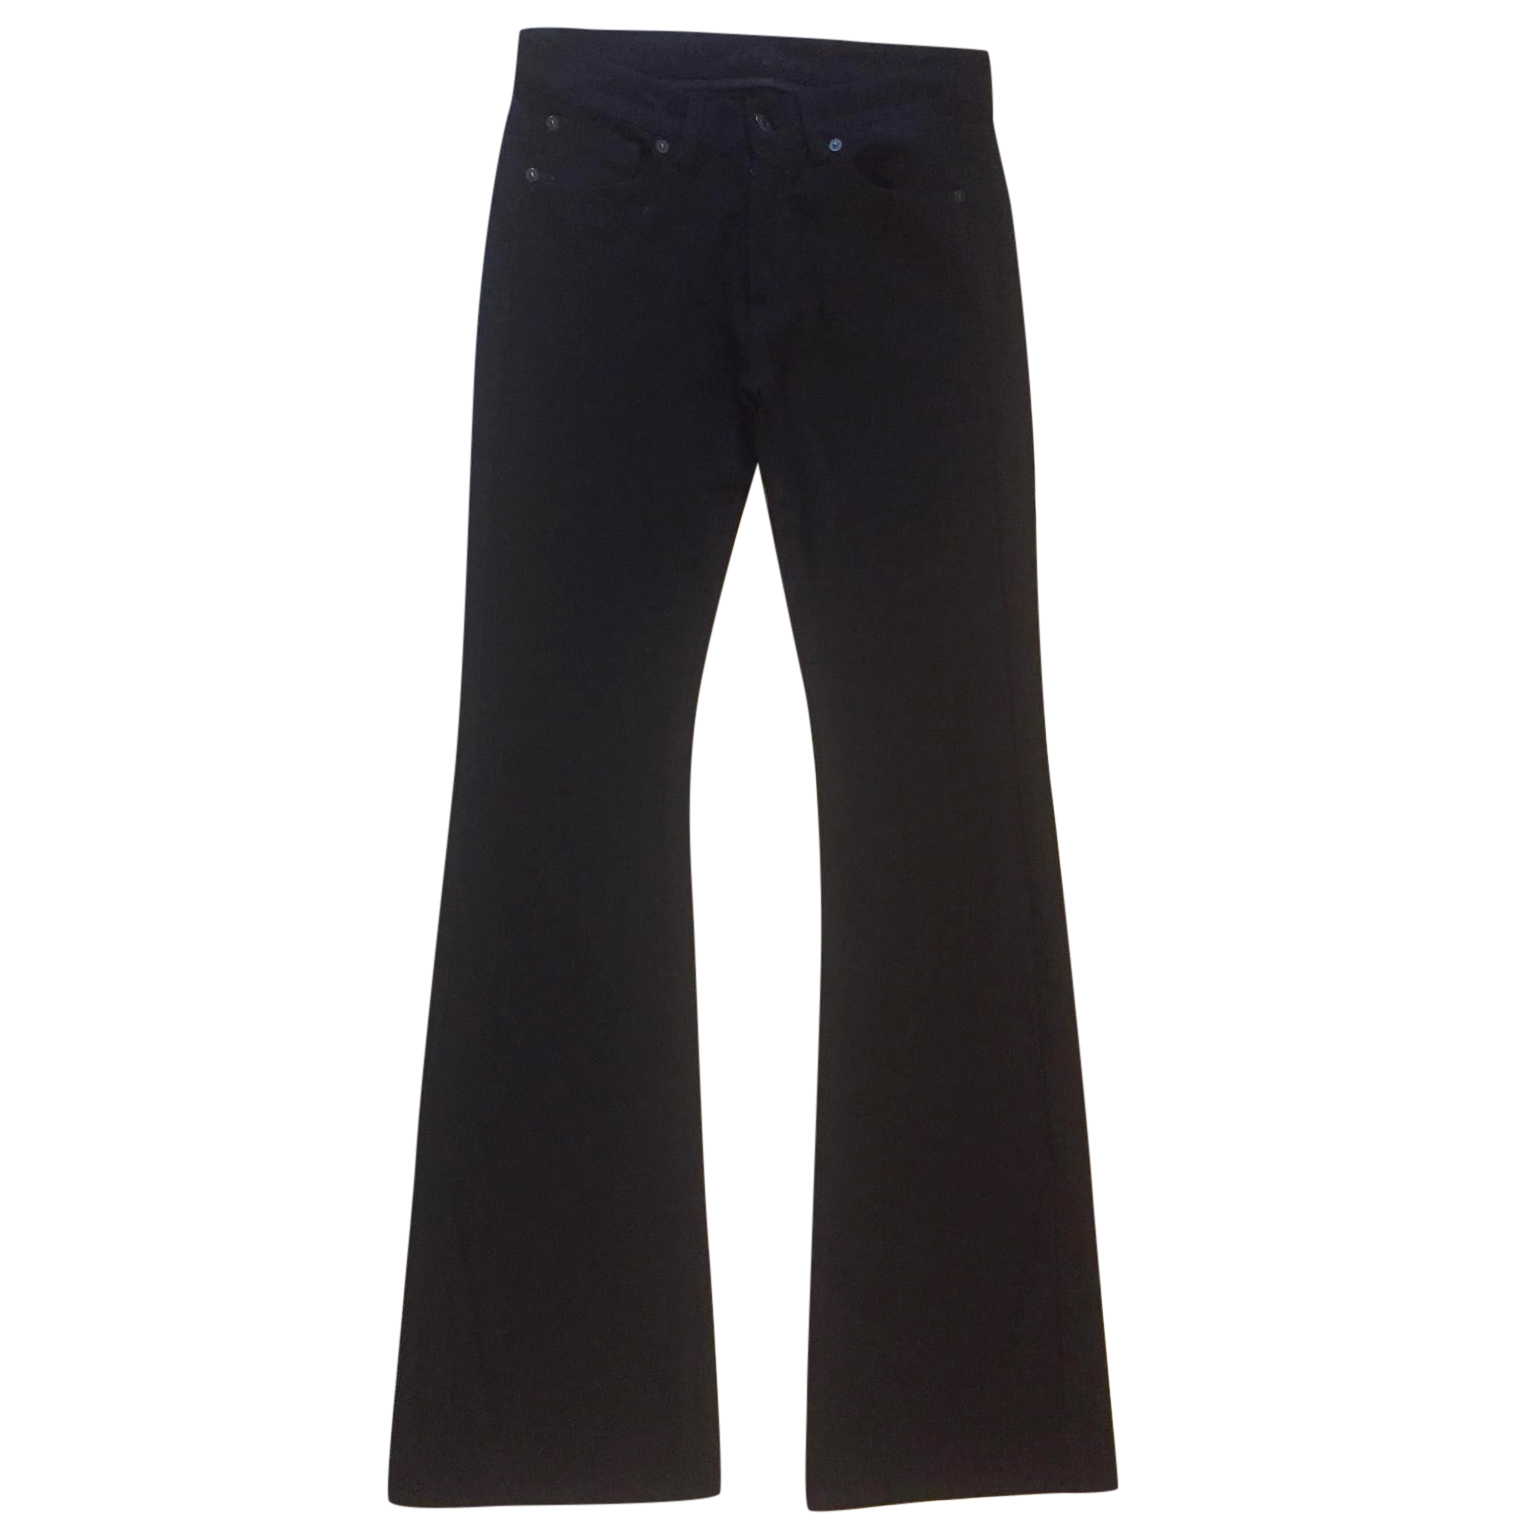 7 For All Man Kind boot-cut stretch trousers